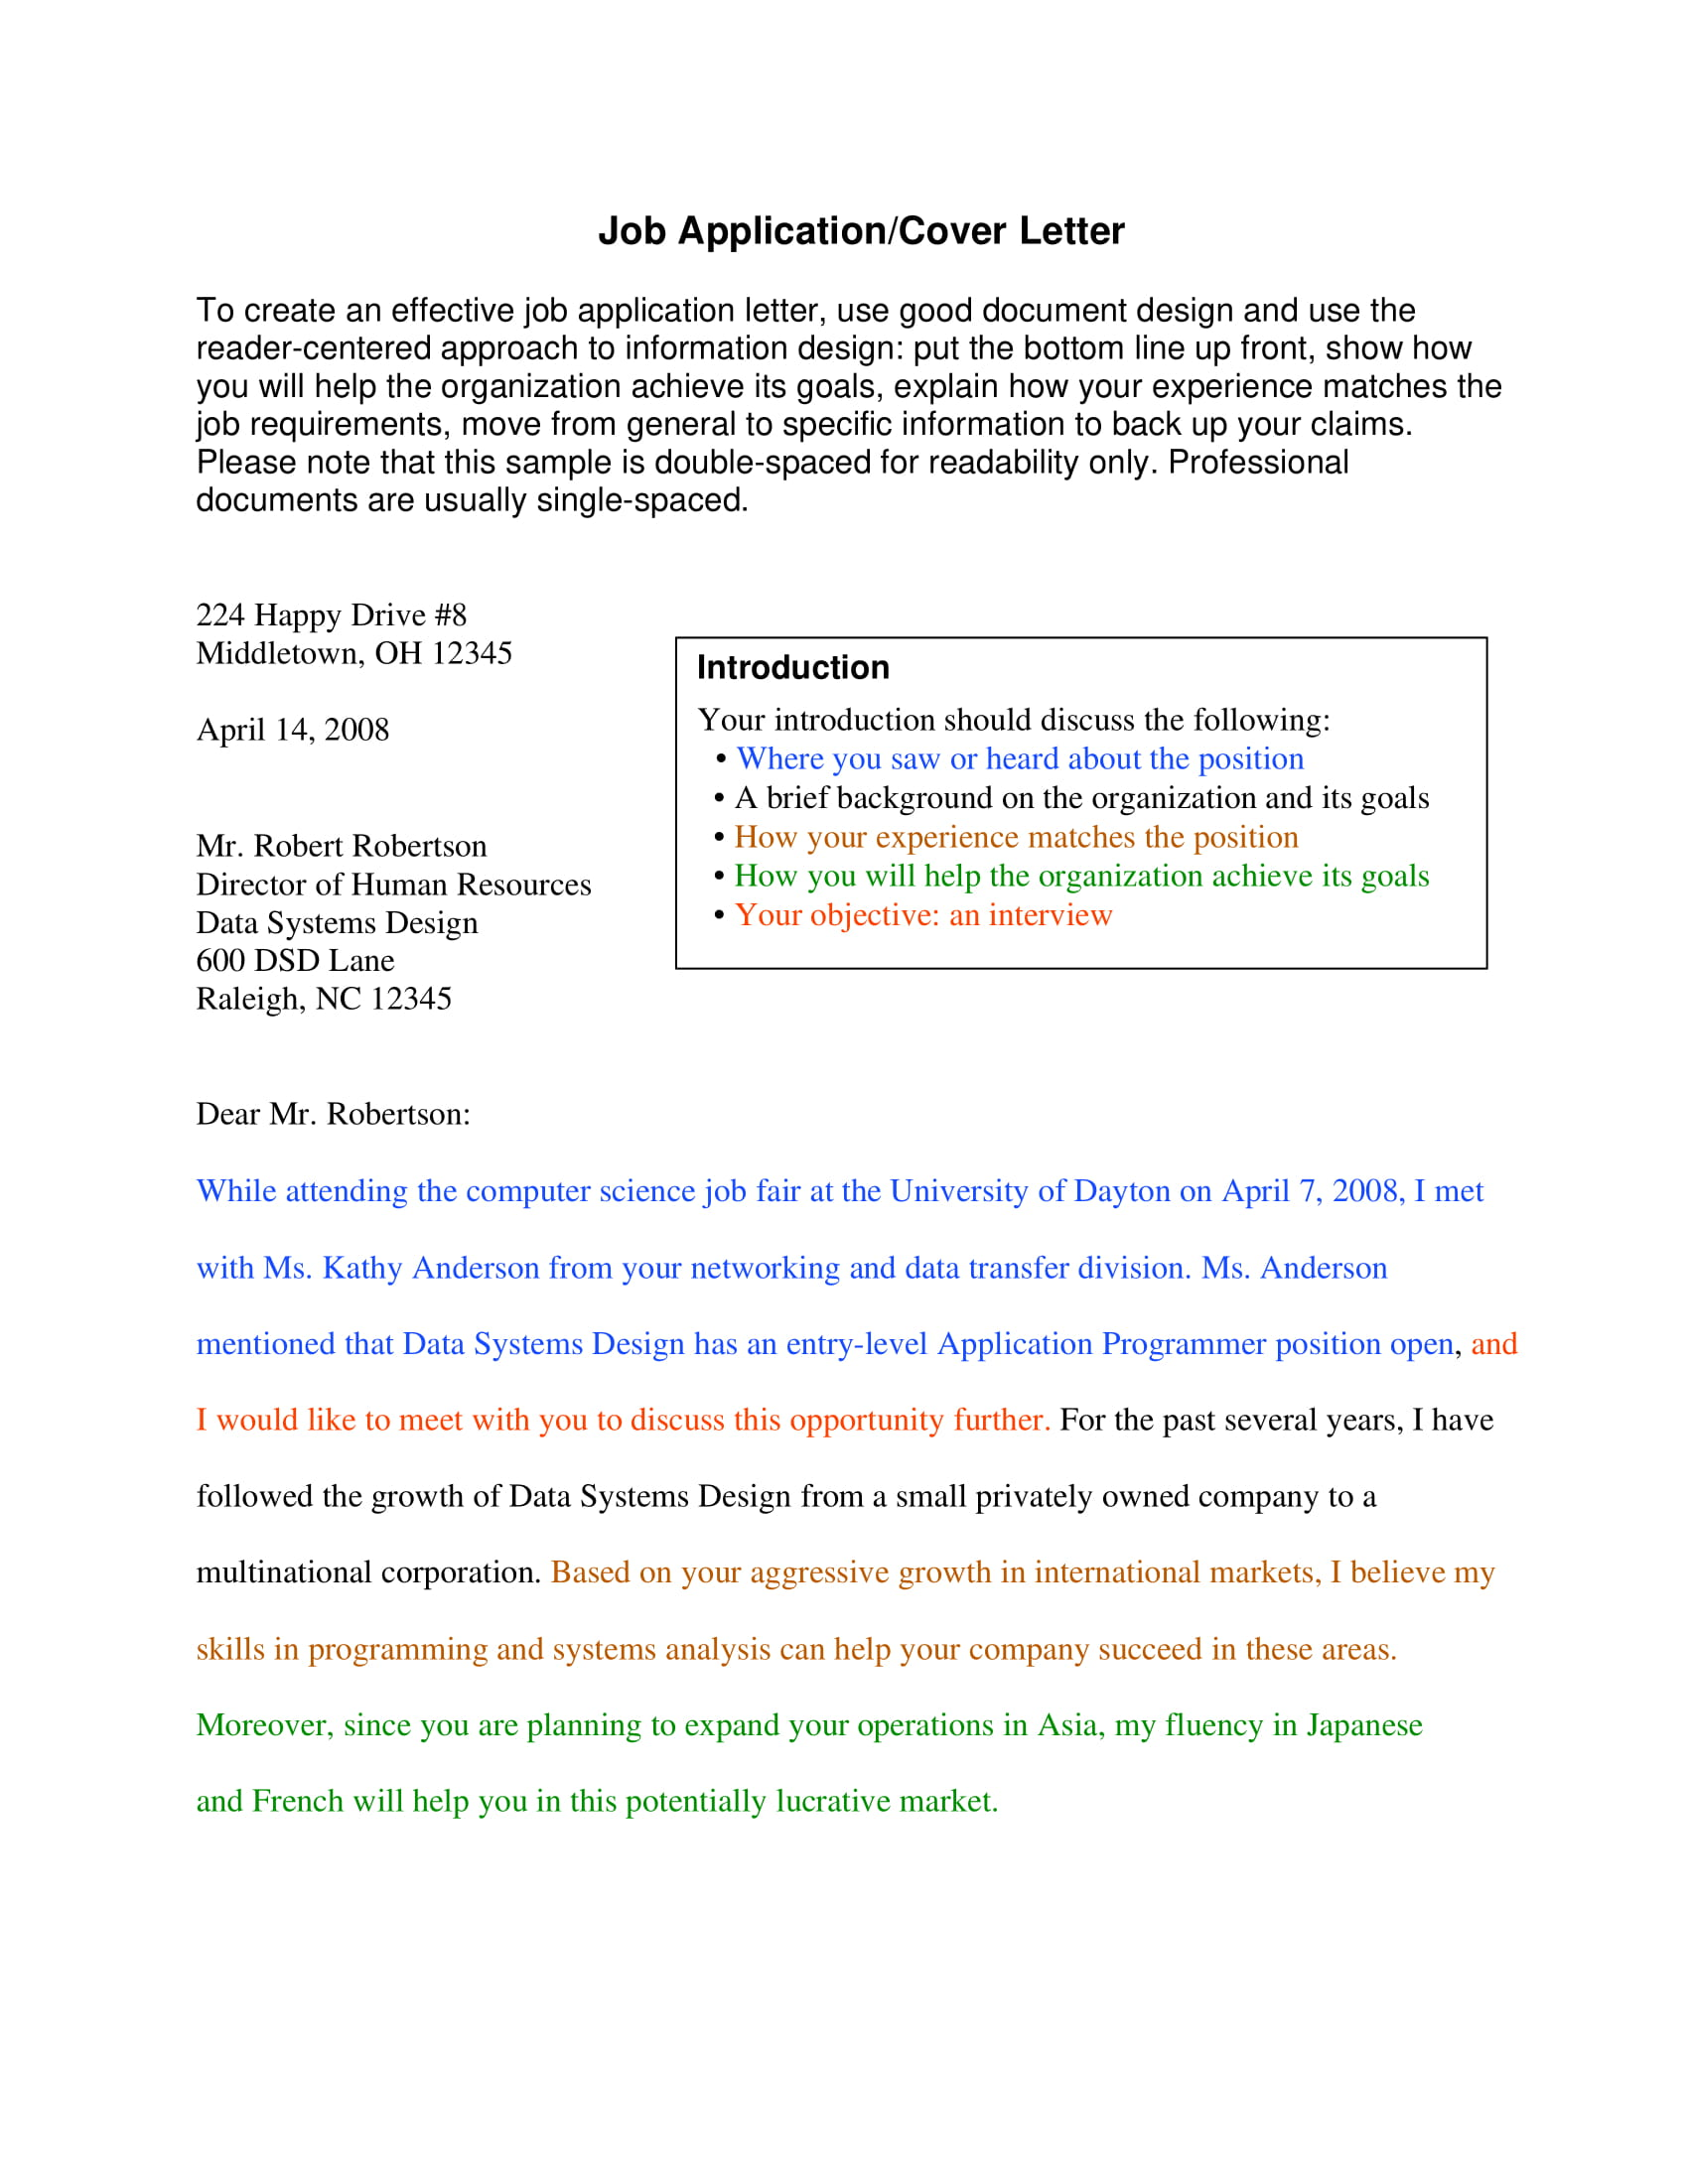 cover letter example job application purdue owl